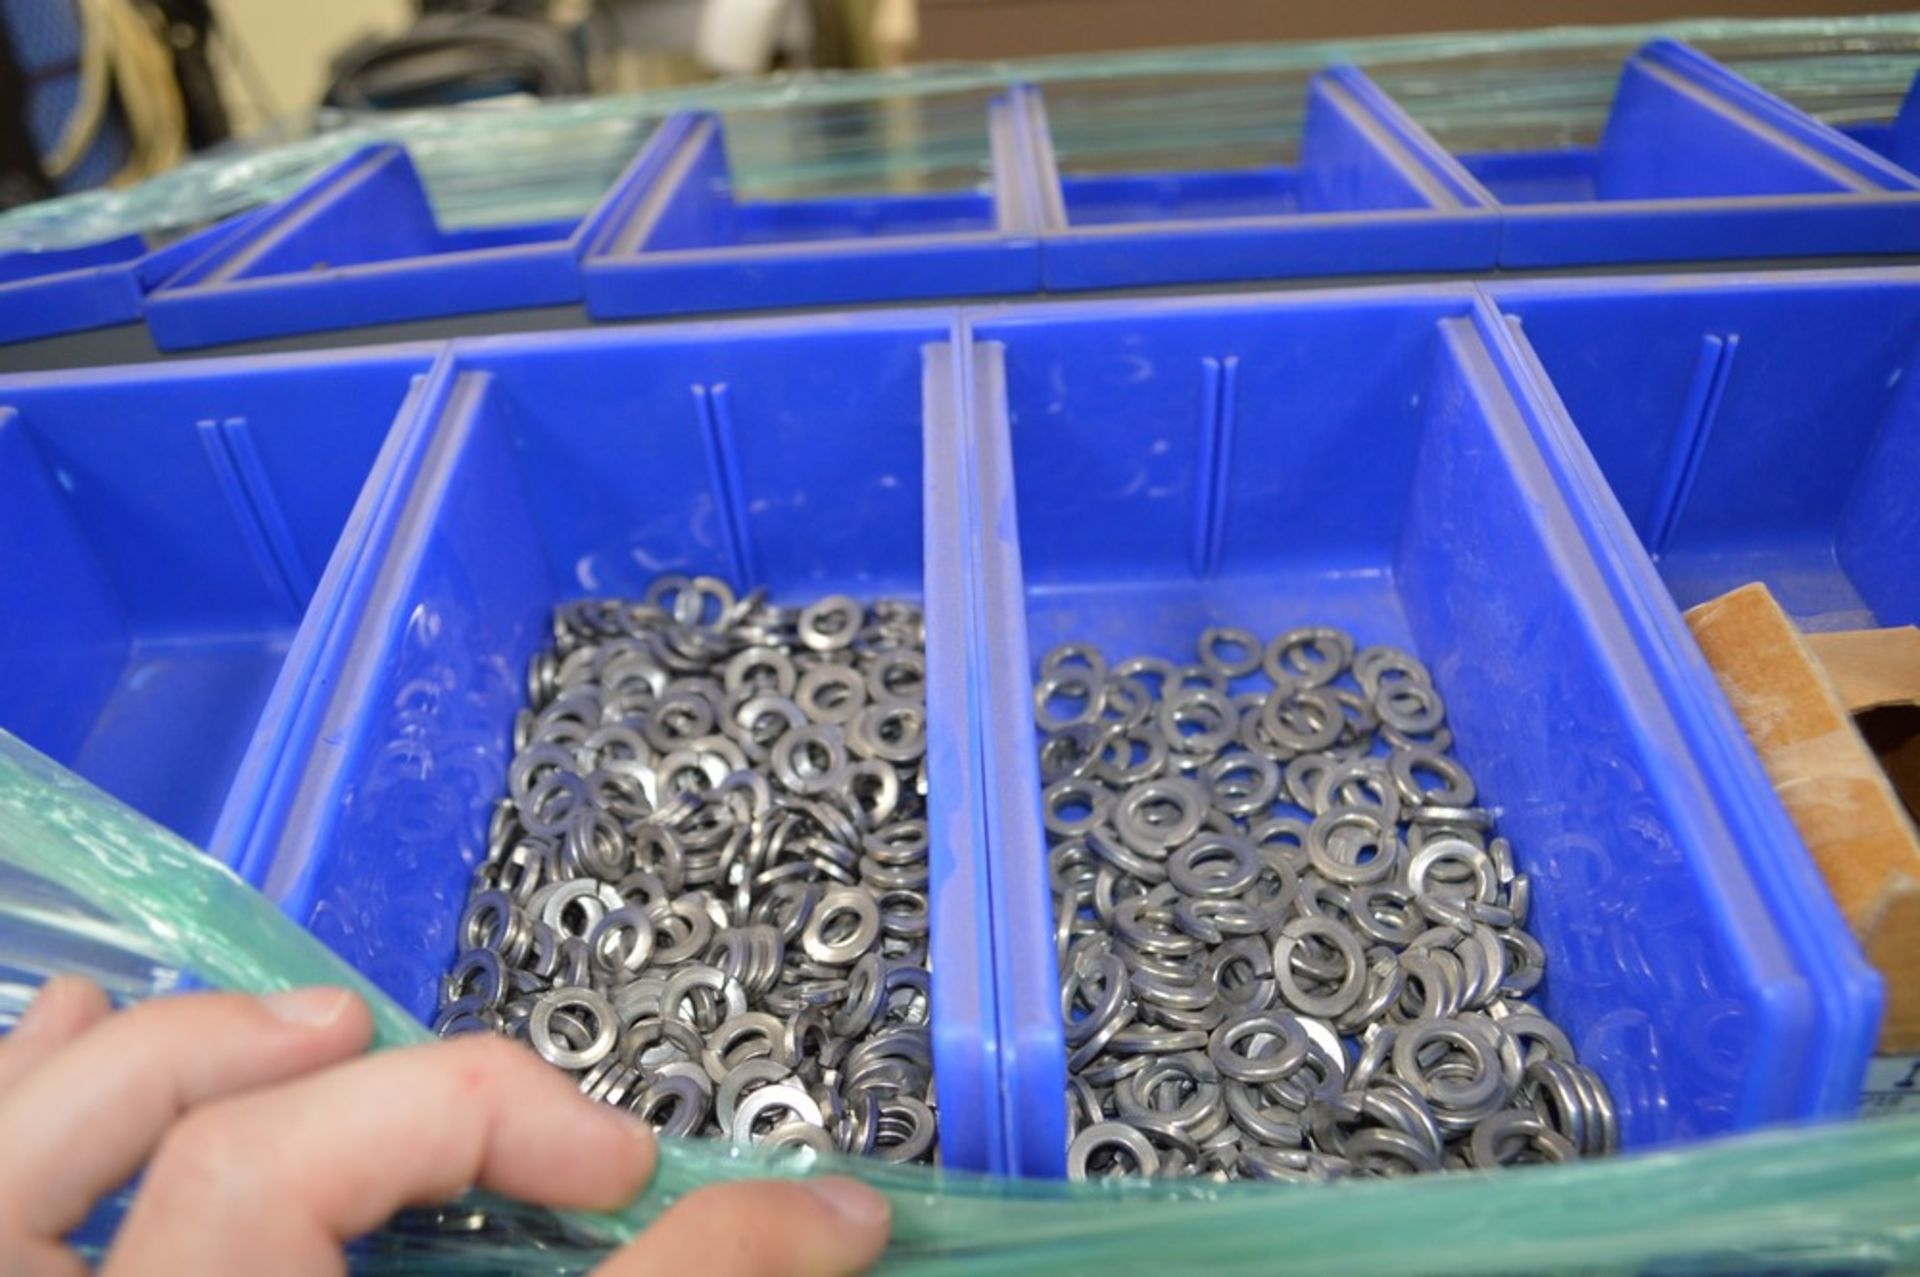 Grey rolling rack with blue bins, giant assortment Stainless Steel allen wrench head Cap Screws. - Image 4 of 5